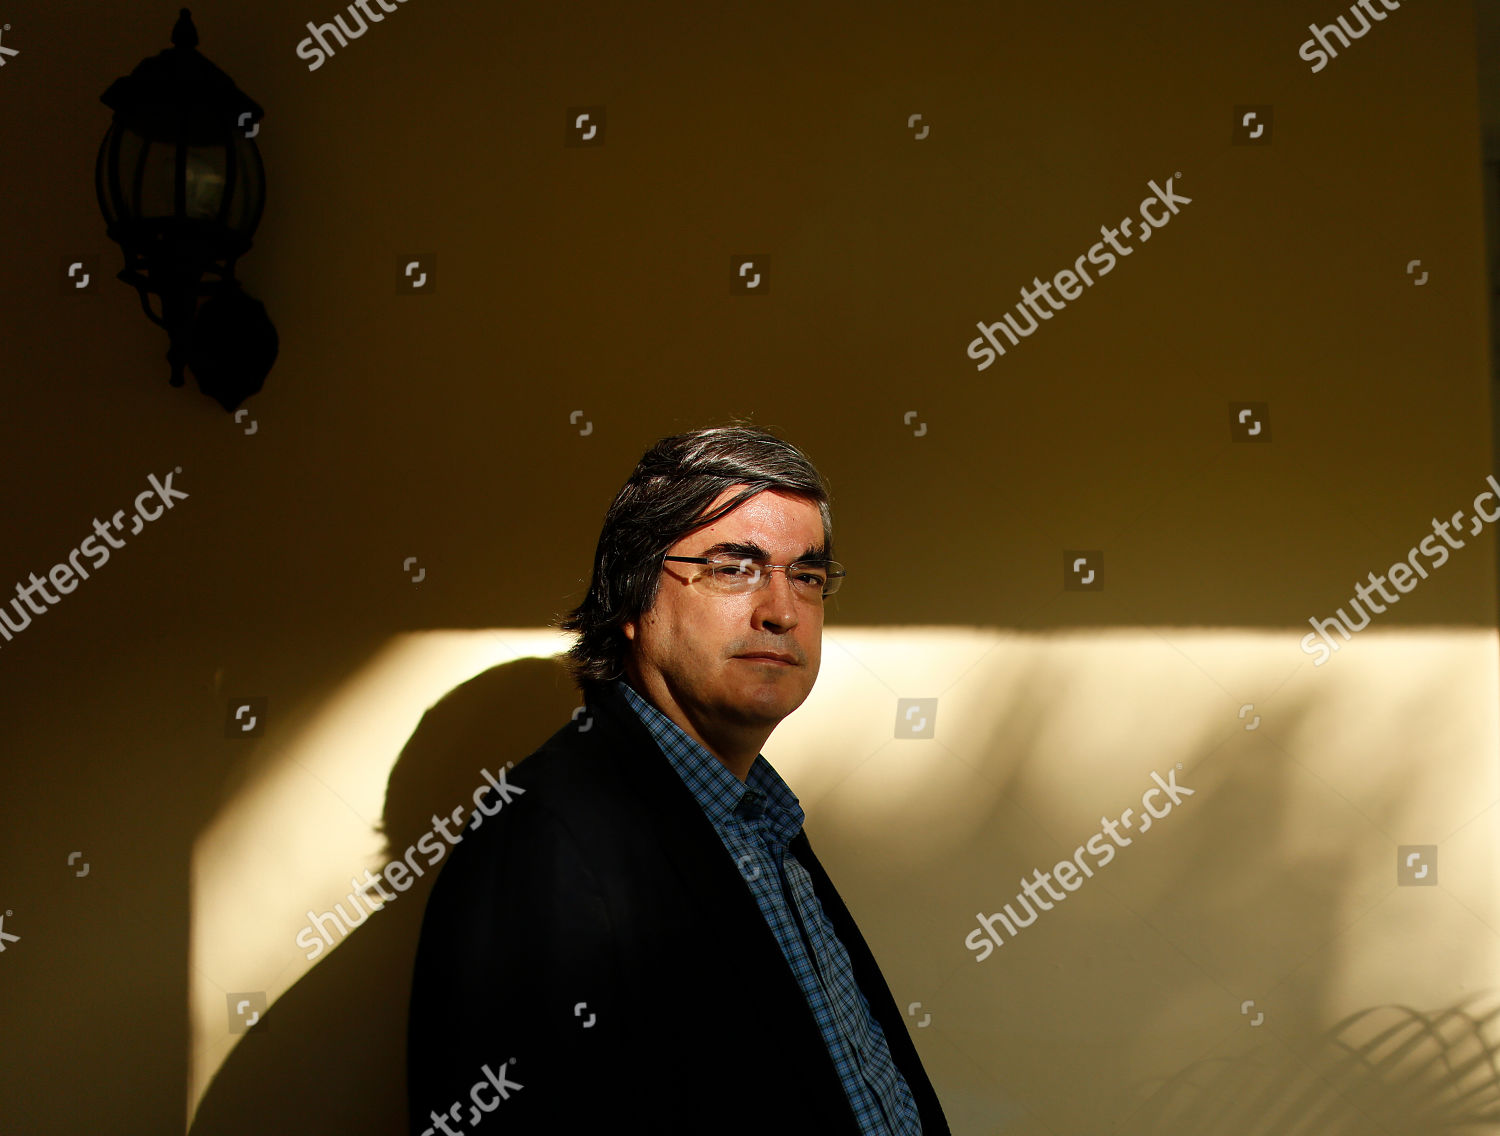 Jaime Bayly Poses Portrait Key Biscayne Fla Editorial Stock Photo Stock Image Shutterstock Restaurants at this key biscayne resort are deeply rooted in the miami experience. https www shutterstock com editorial image editorial venezuela jaime bayly key biscayne usa 04 dec 2018 10079831c